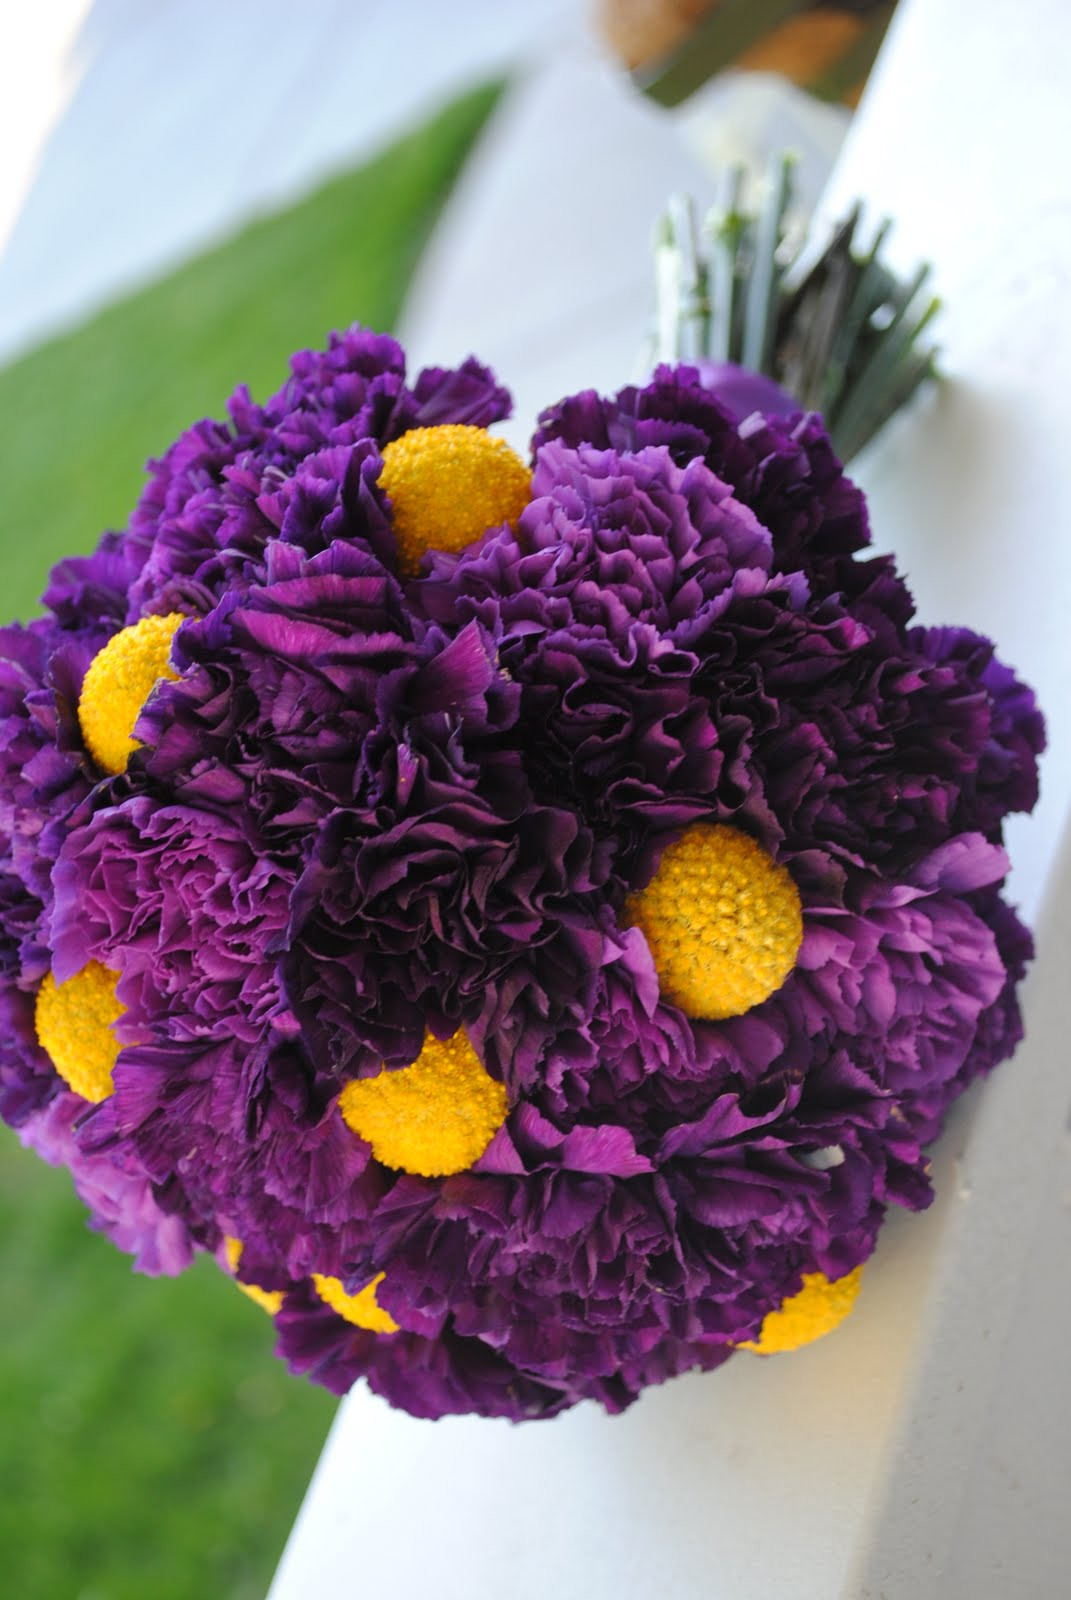 Amies blog purple wedding bouquet purple wedding bouquet color meaning purple mightylinksfo